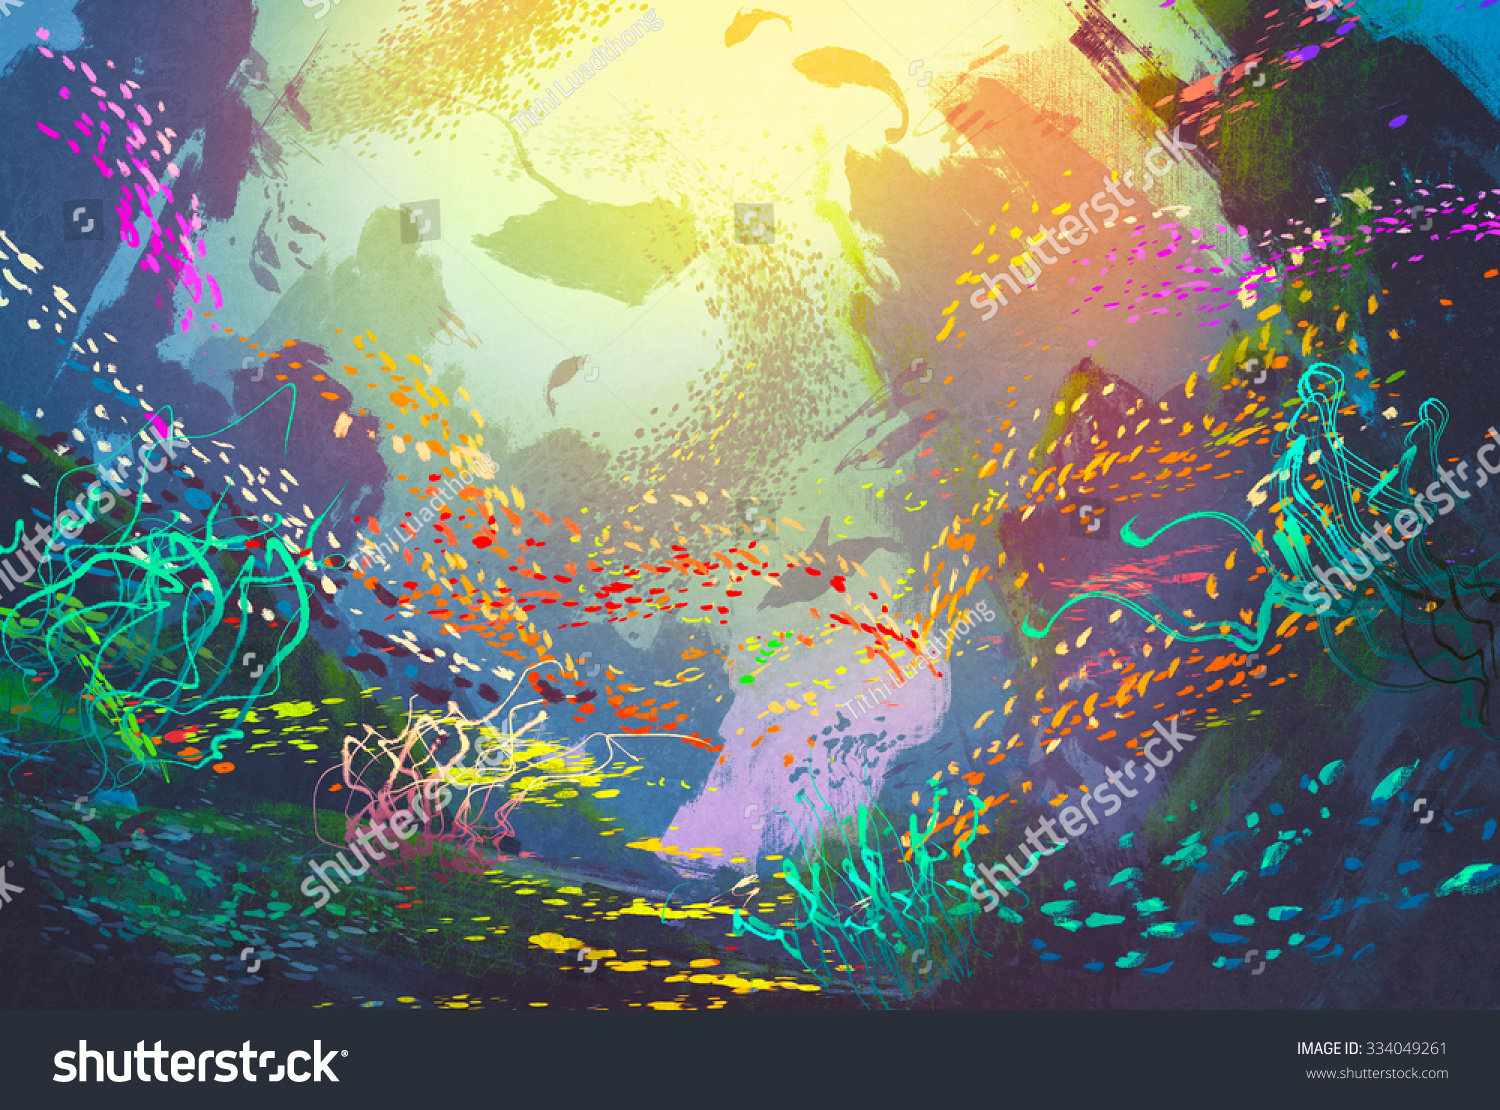 Underwater With Coral Reef And Colorful Fish,Illustration ...